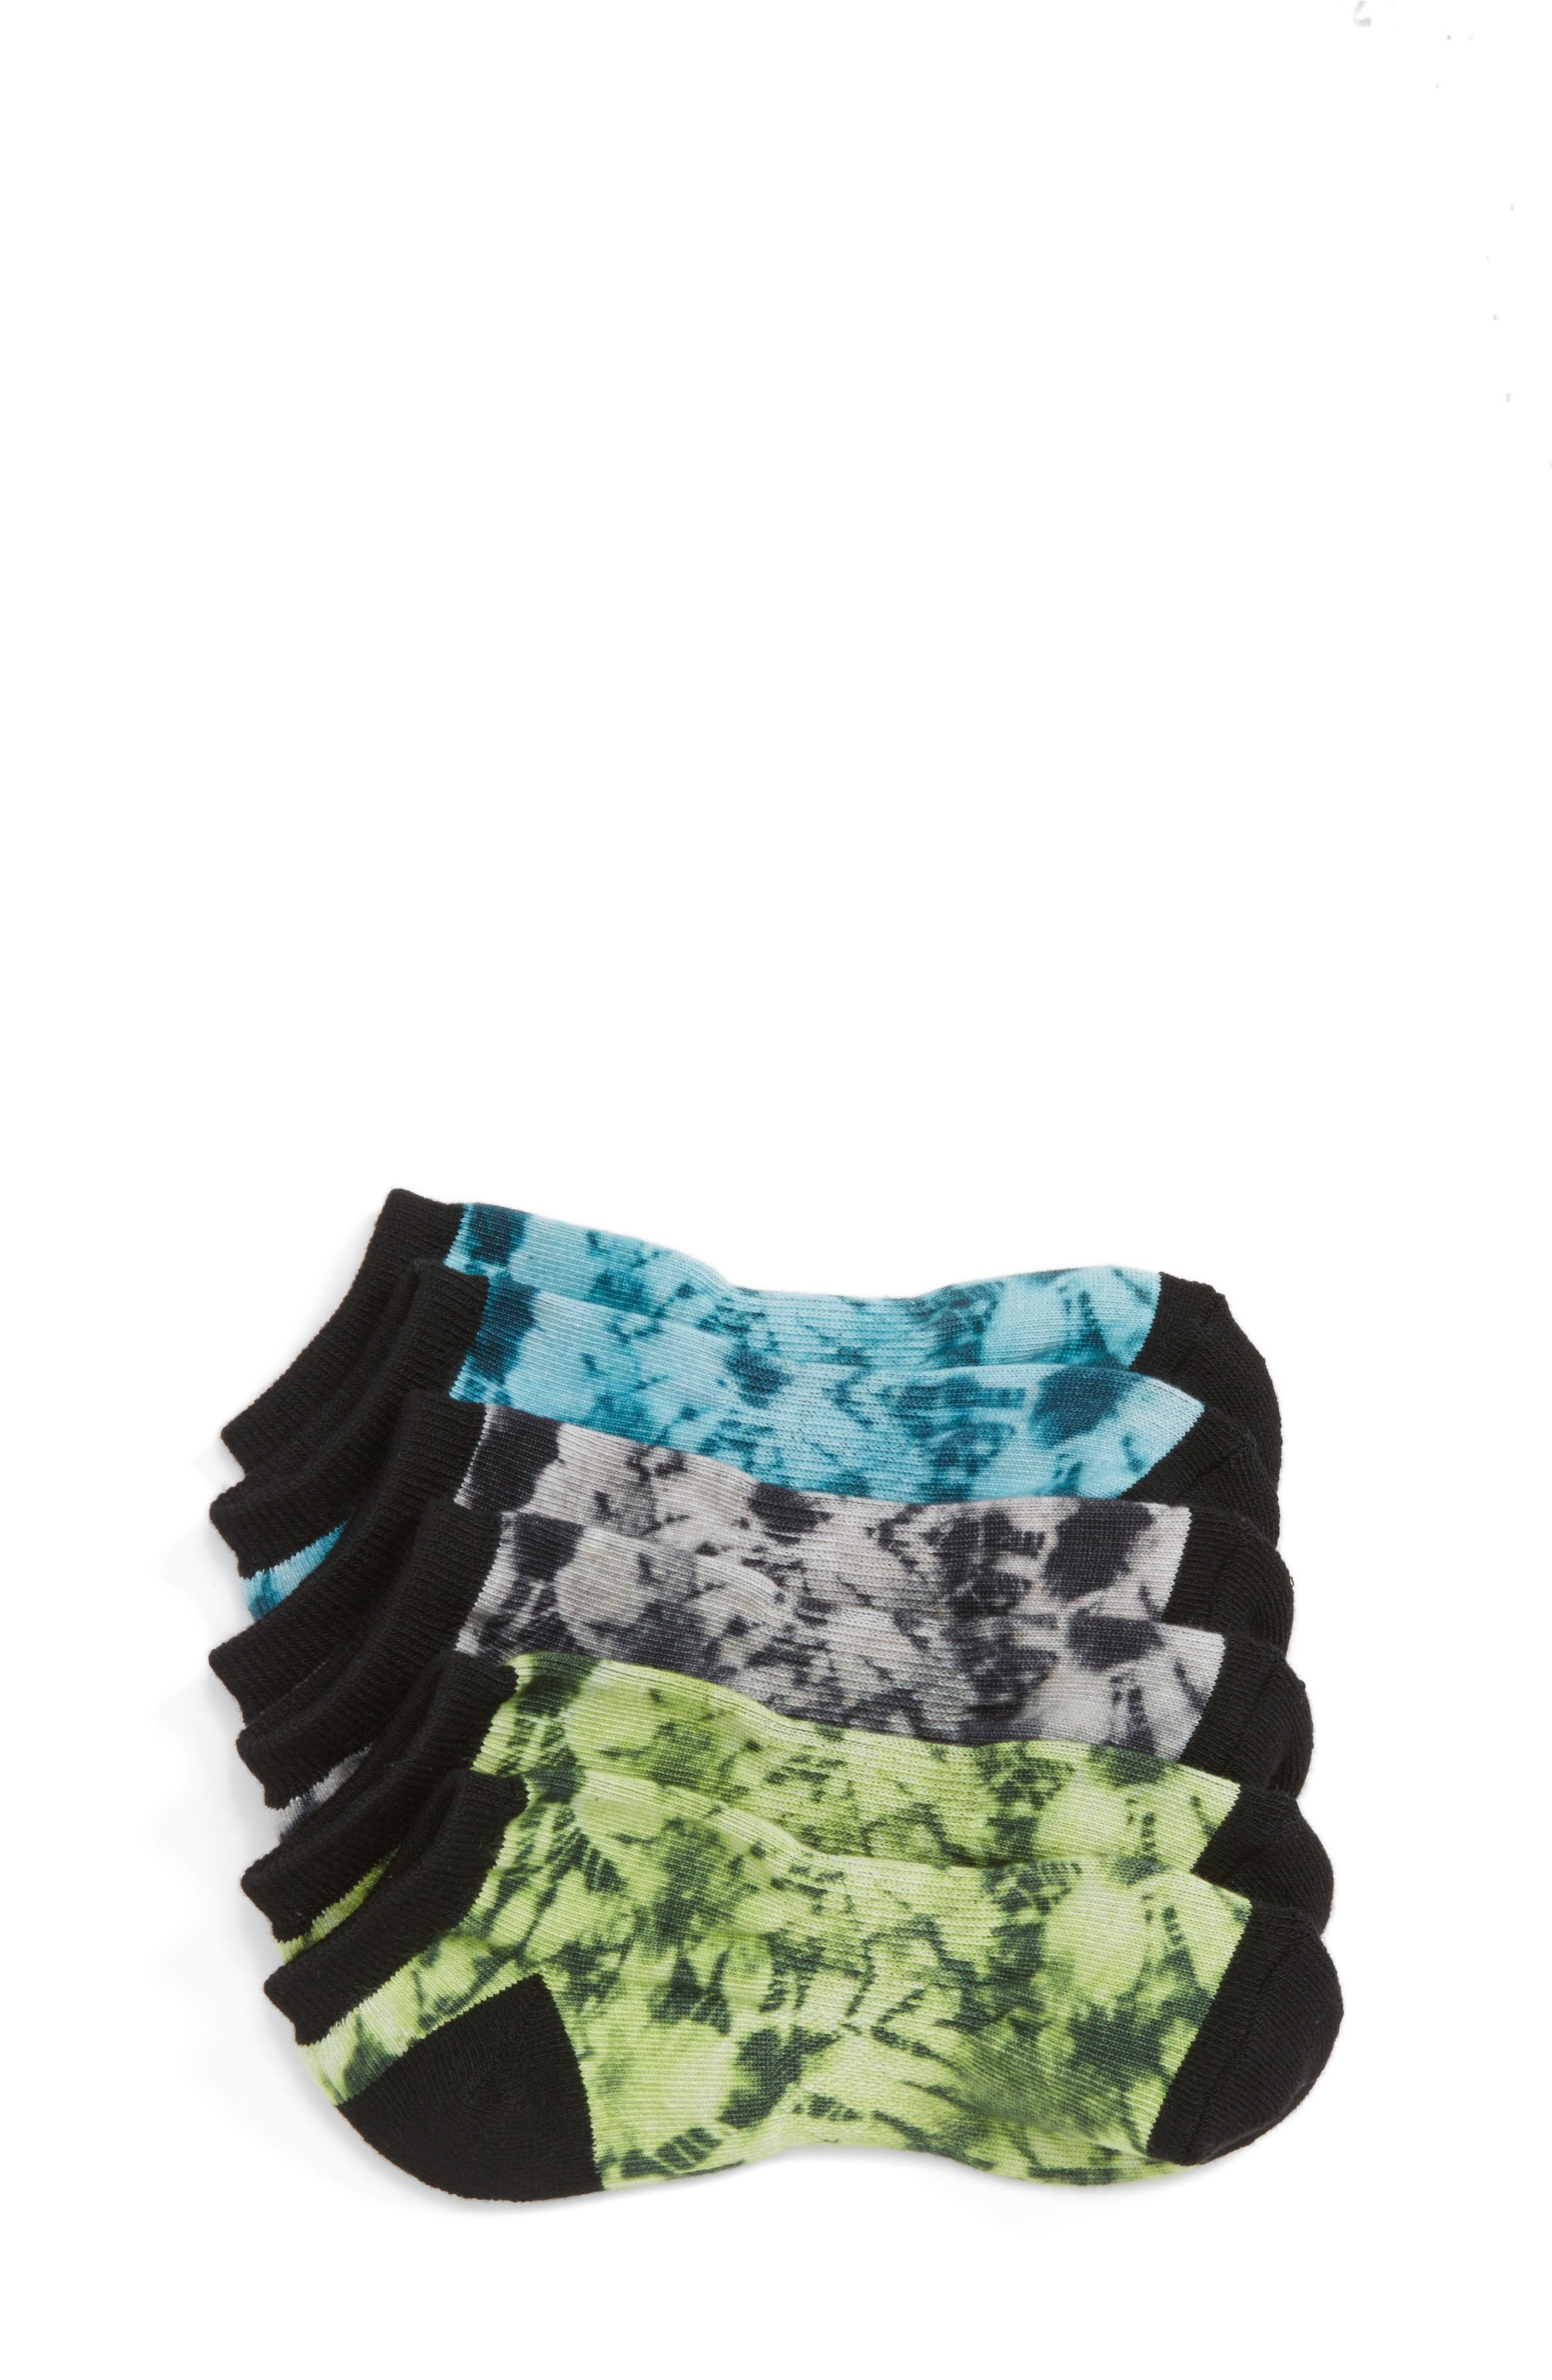 Rotary 3-Pack Lowcut Socks,                         Main,                         color, Black Raven